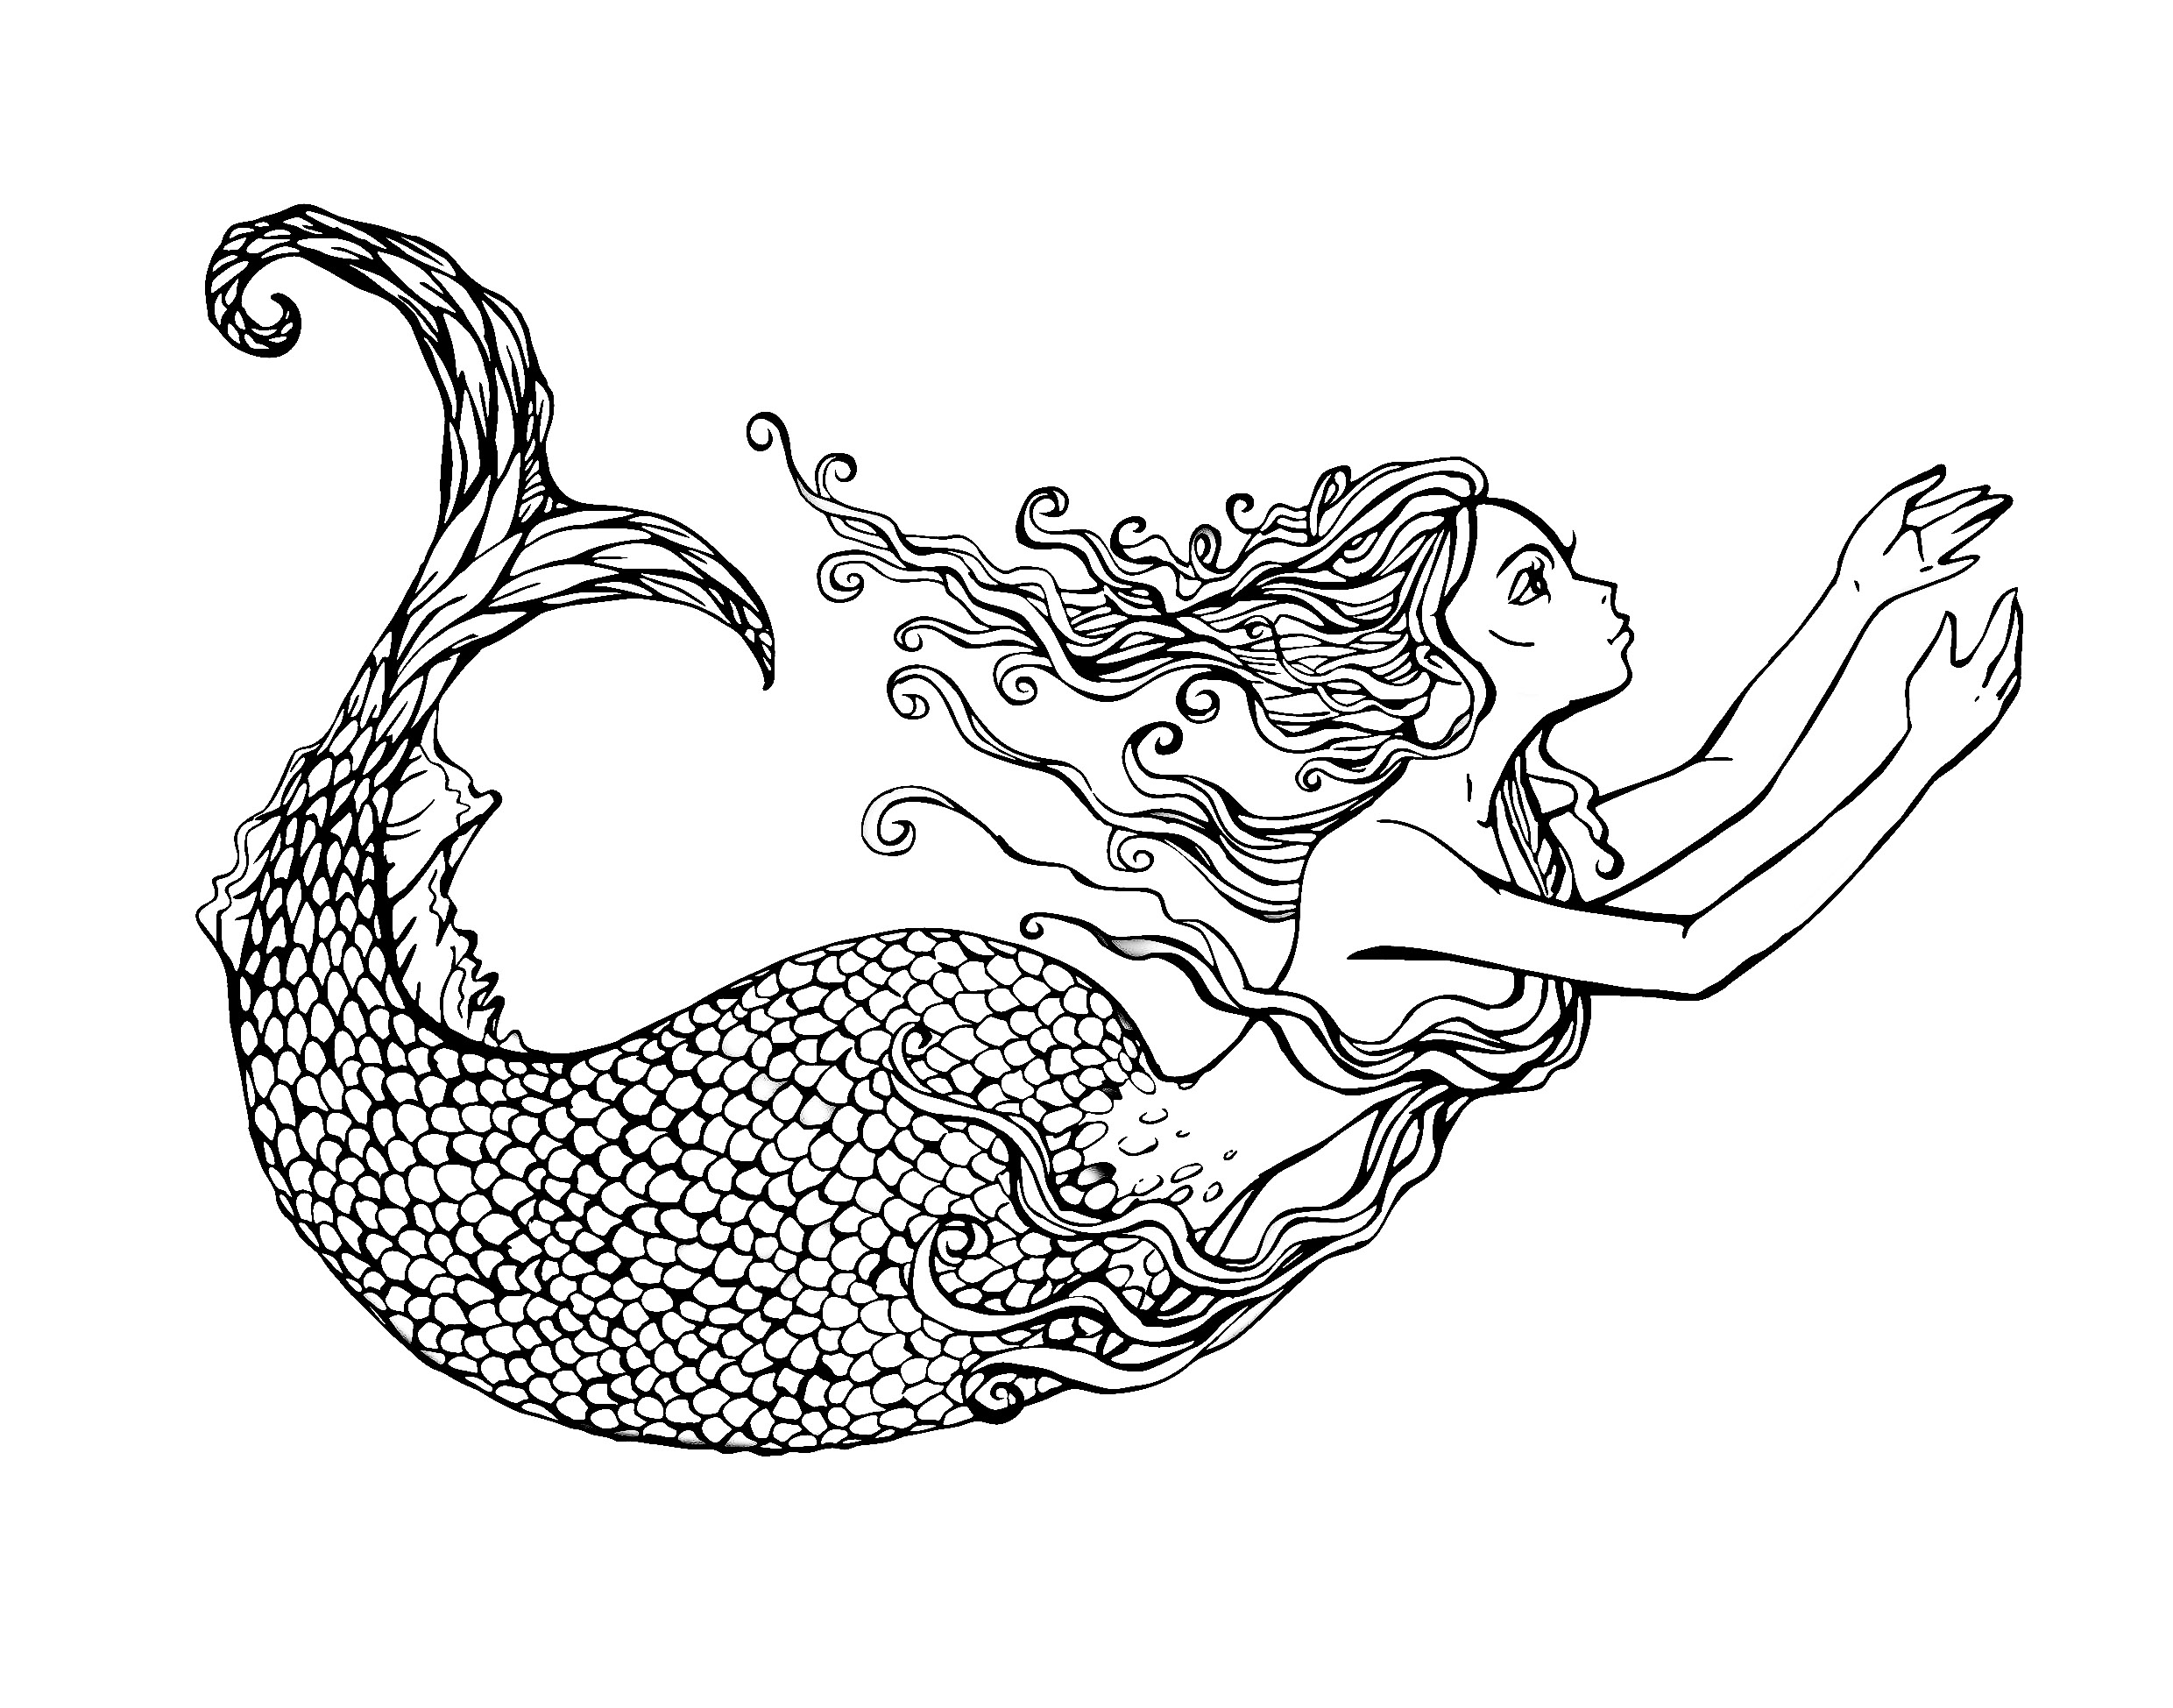 2480x1949 Drawings Of Mermaids Swimming Anime Mermaid Drawings